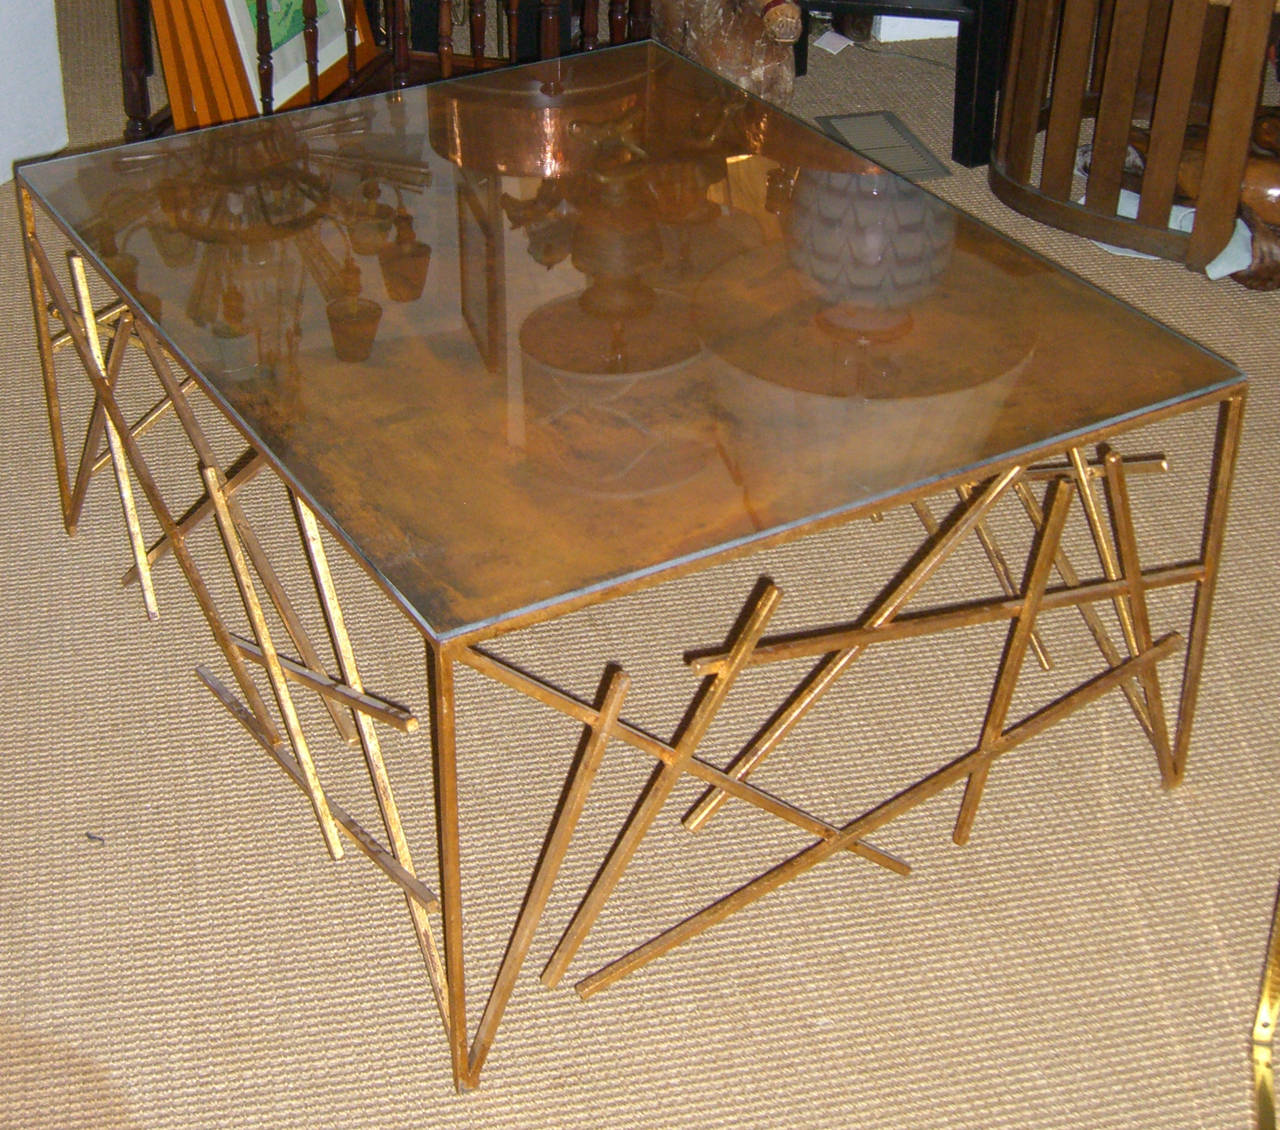 French Custom Metal Criss-Cross Design Cocktail Table For Sale